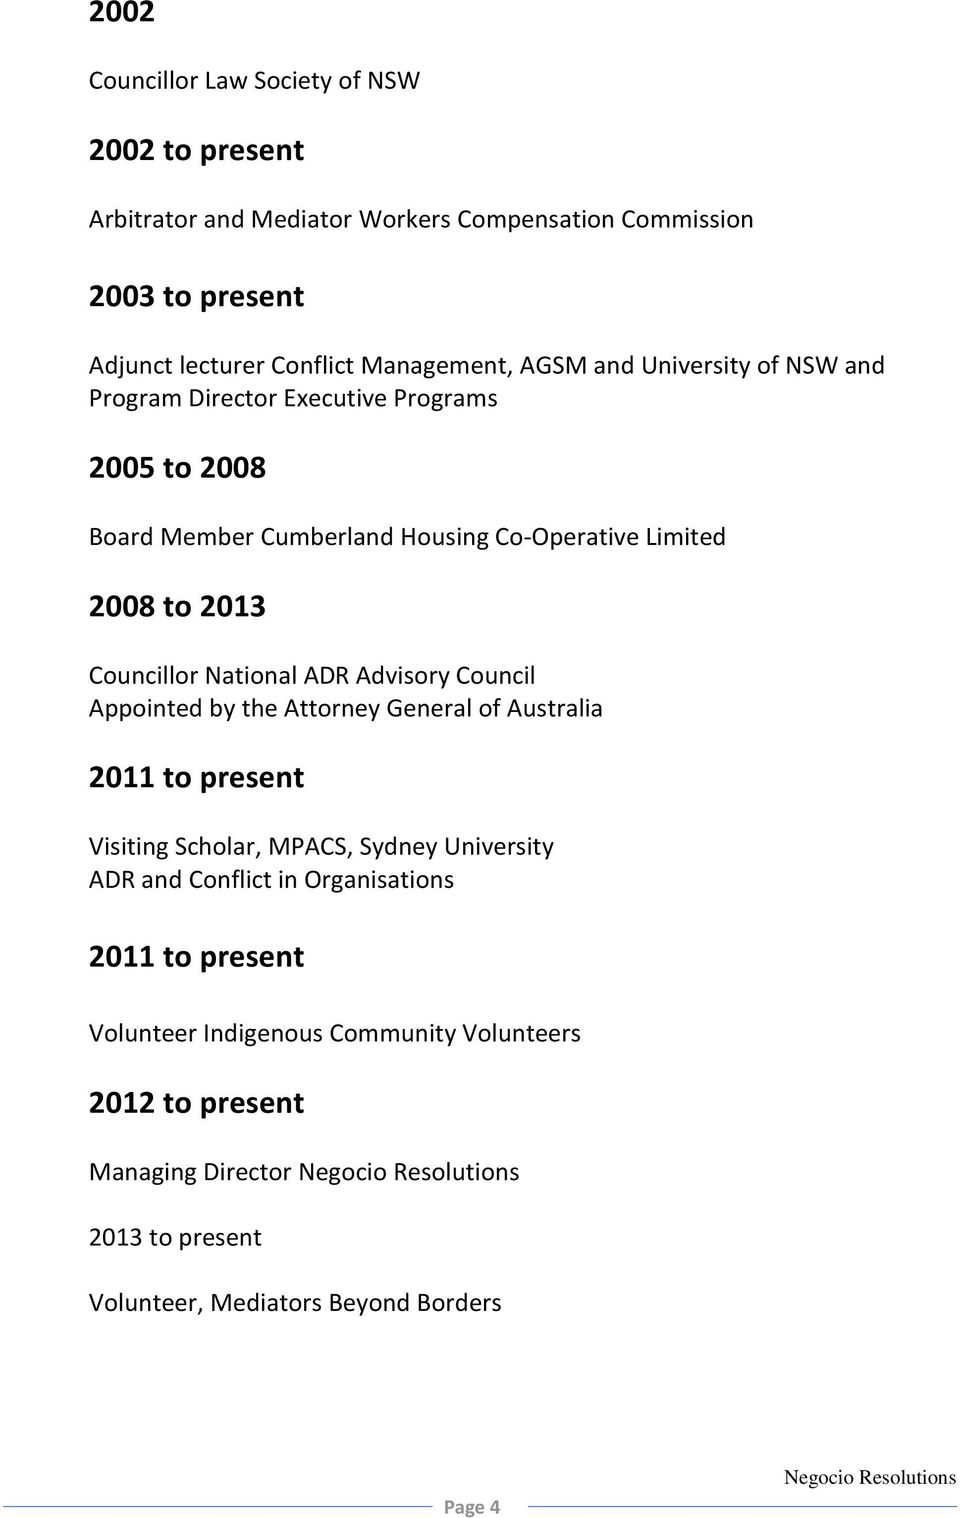 Councillor National ADR Advisory Council Appointed by the Attorney General of Australia 2011 to present Visiting Scholar, MPACS, Sydney University ADR and